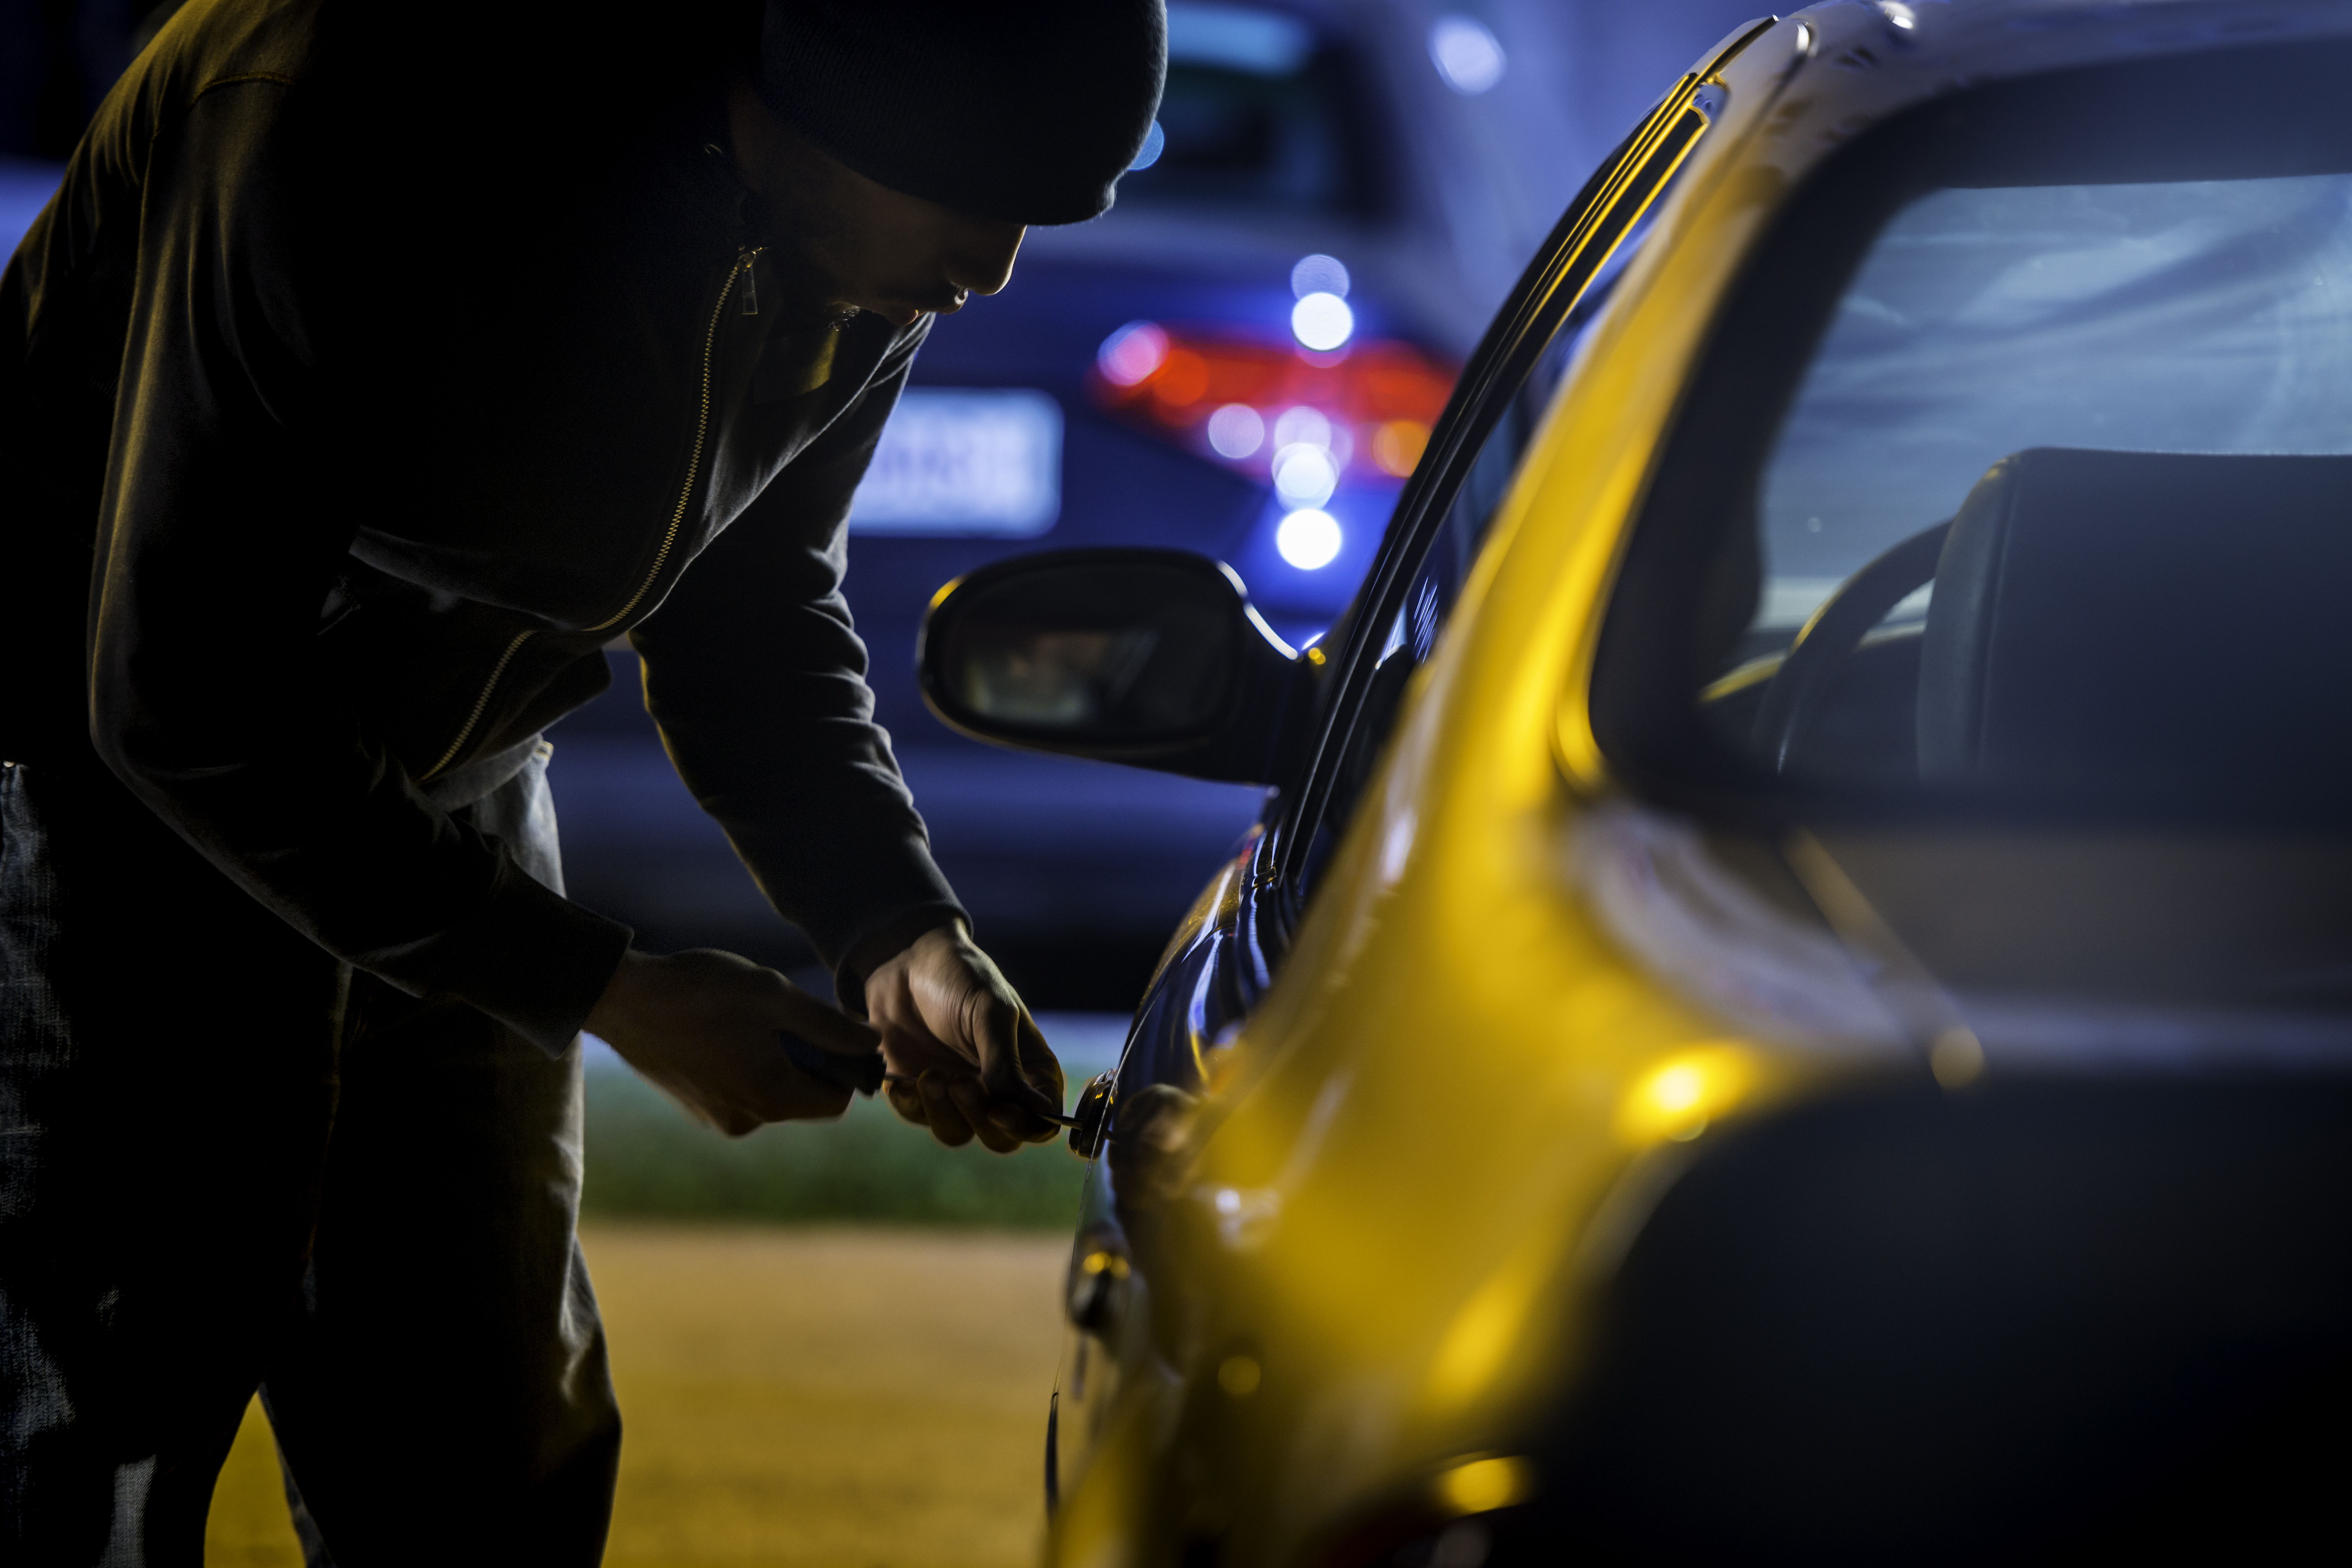 What Happens If Your Car Gets Stolen With Full Insurance